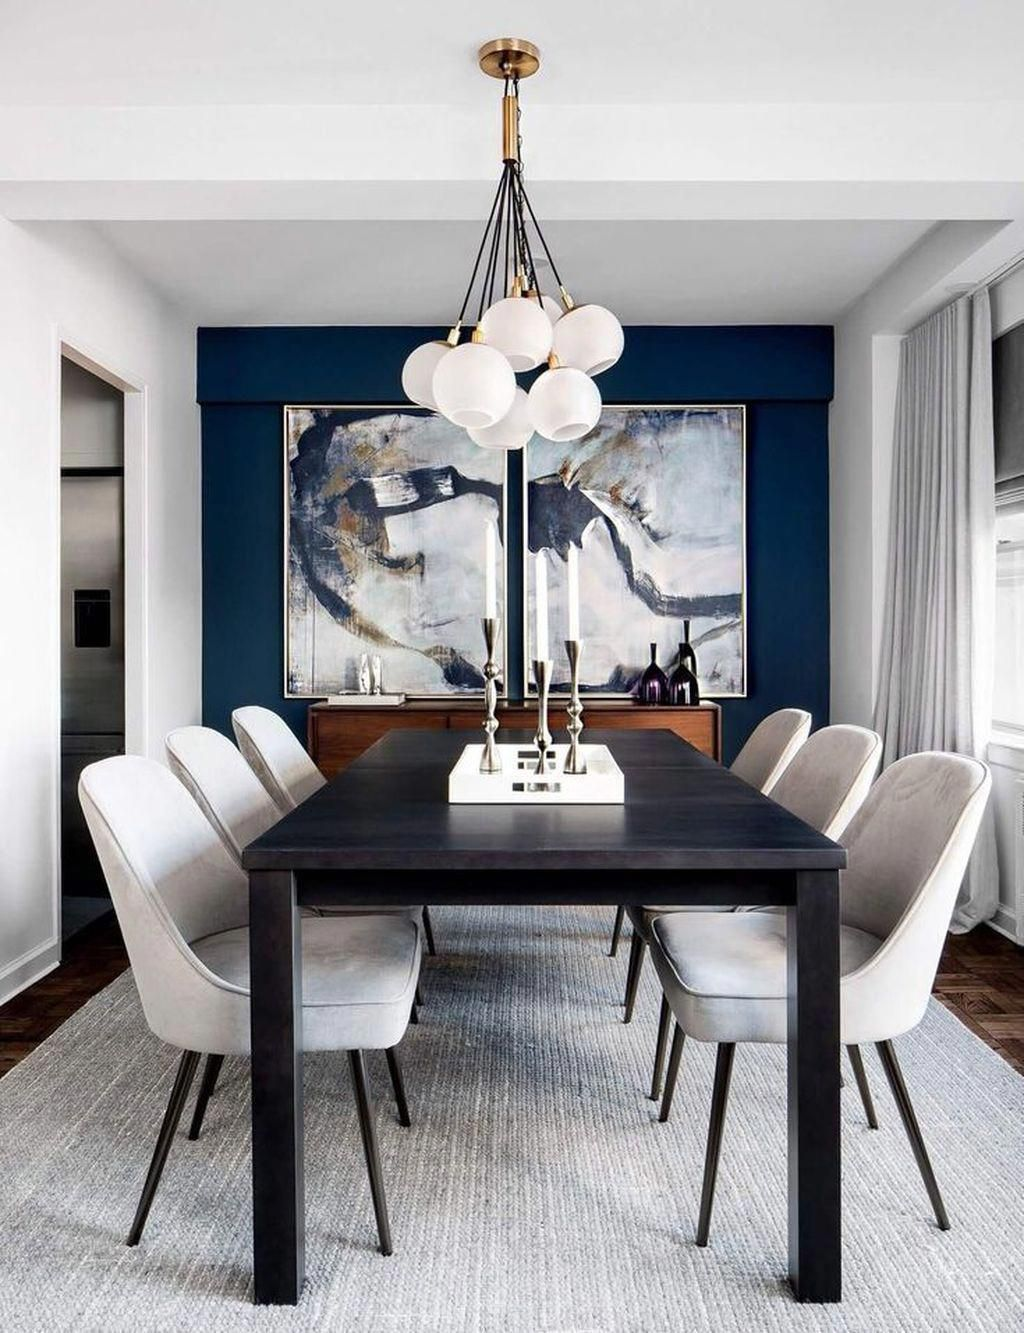 As Long As You Do Your Homework Decorating In A Dining Room Can Be An Entirely Affordable Exp In 2020 Unique Dining Room Dining Room Design Dining Table Design Modern